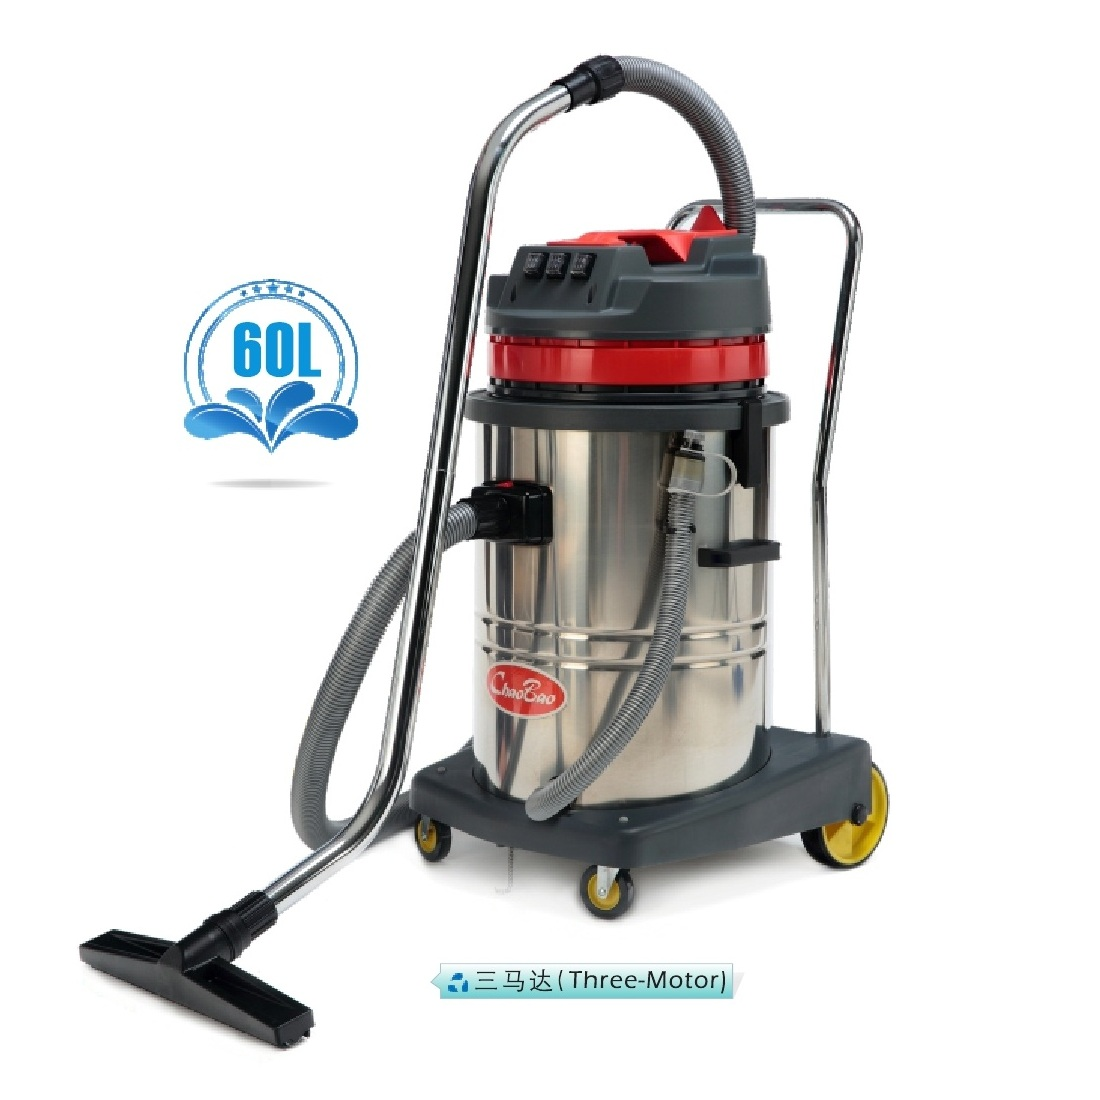 Stainless Steel Wet And Dry Vacuum Cleaner